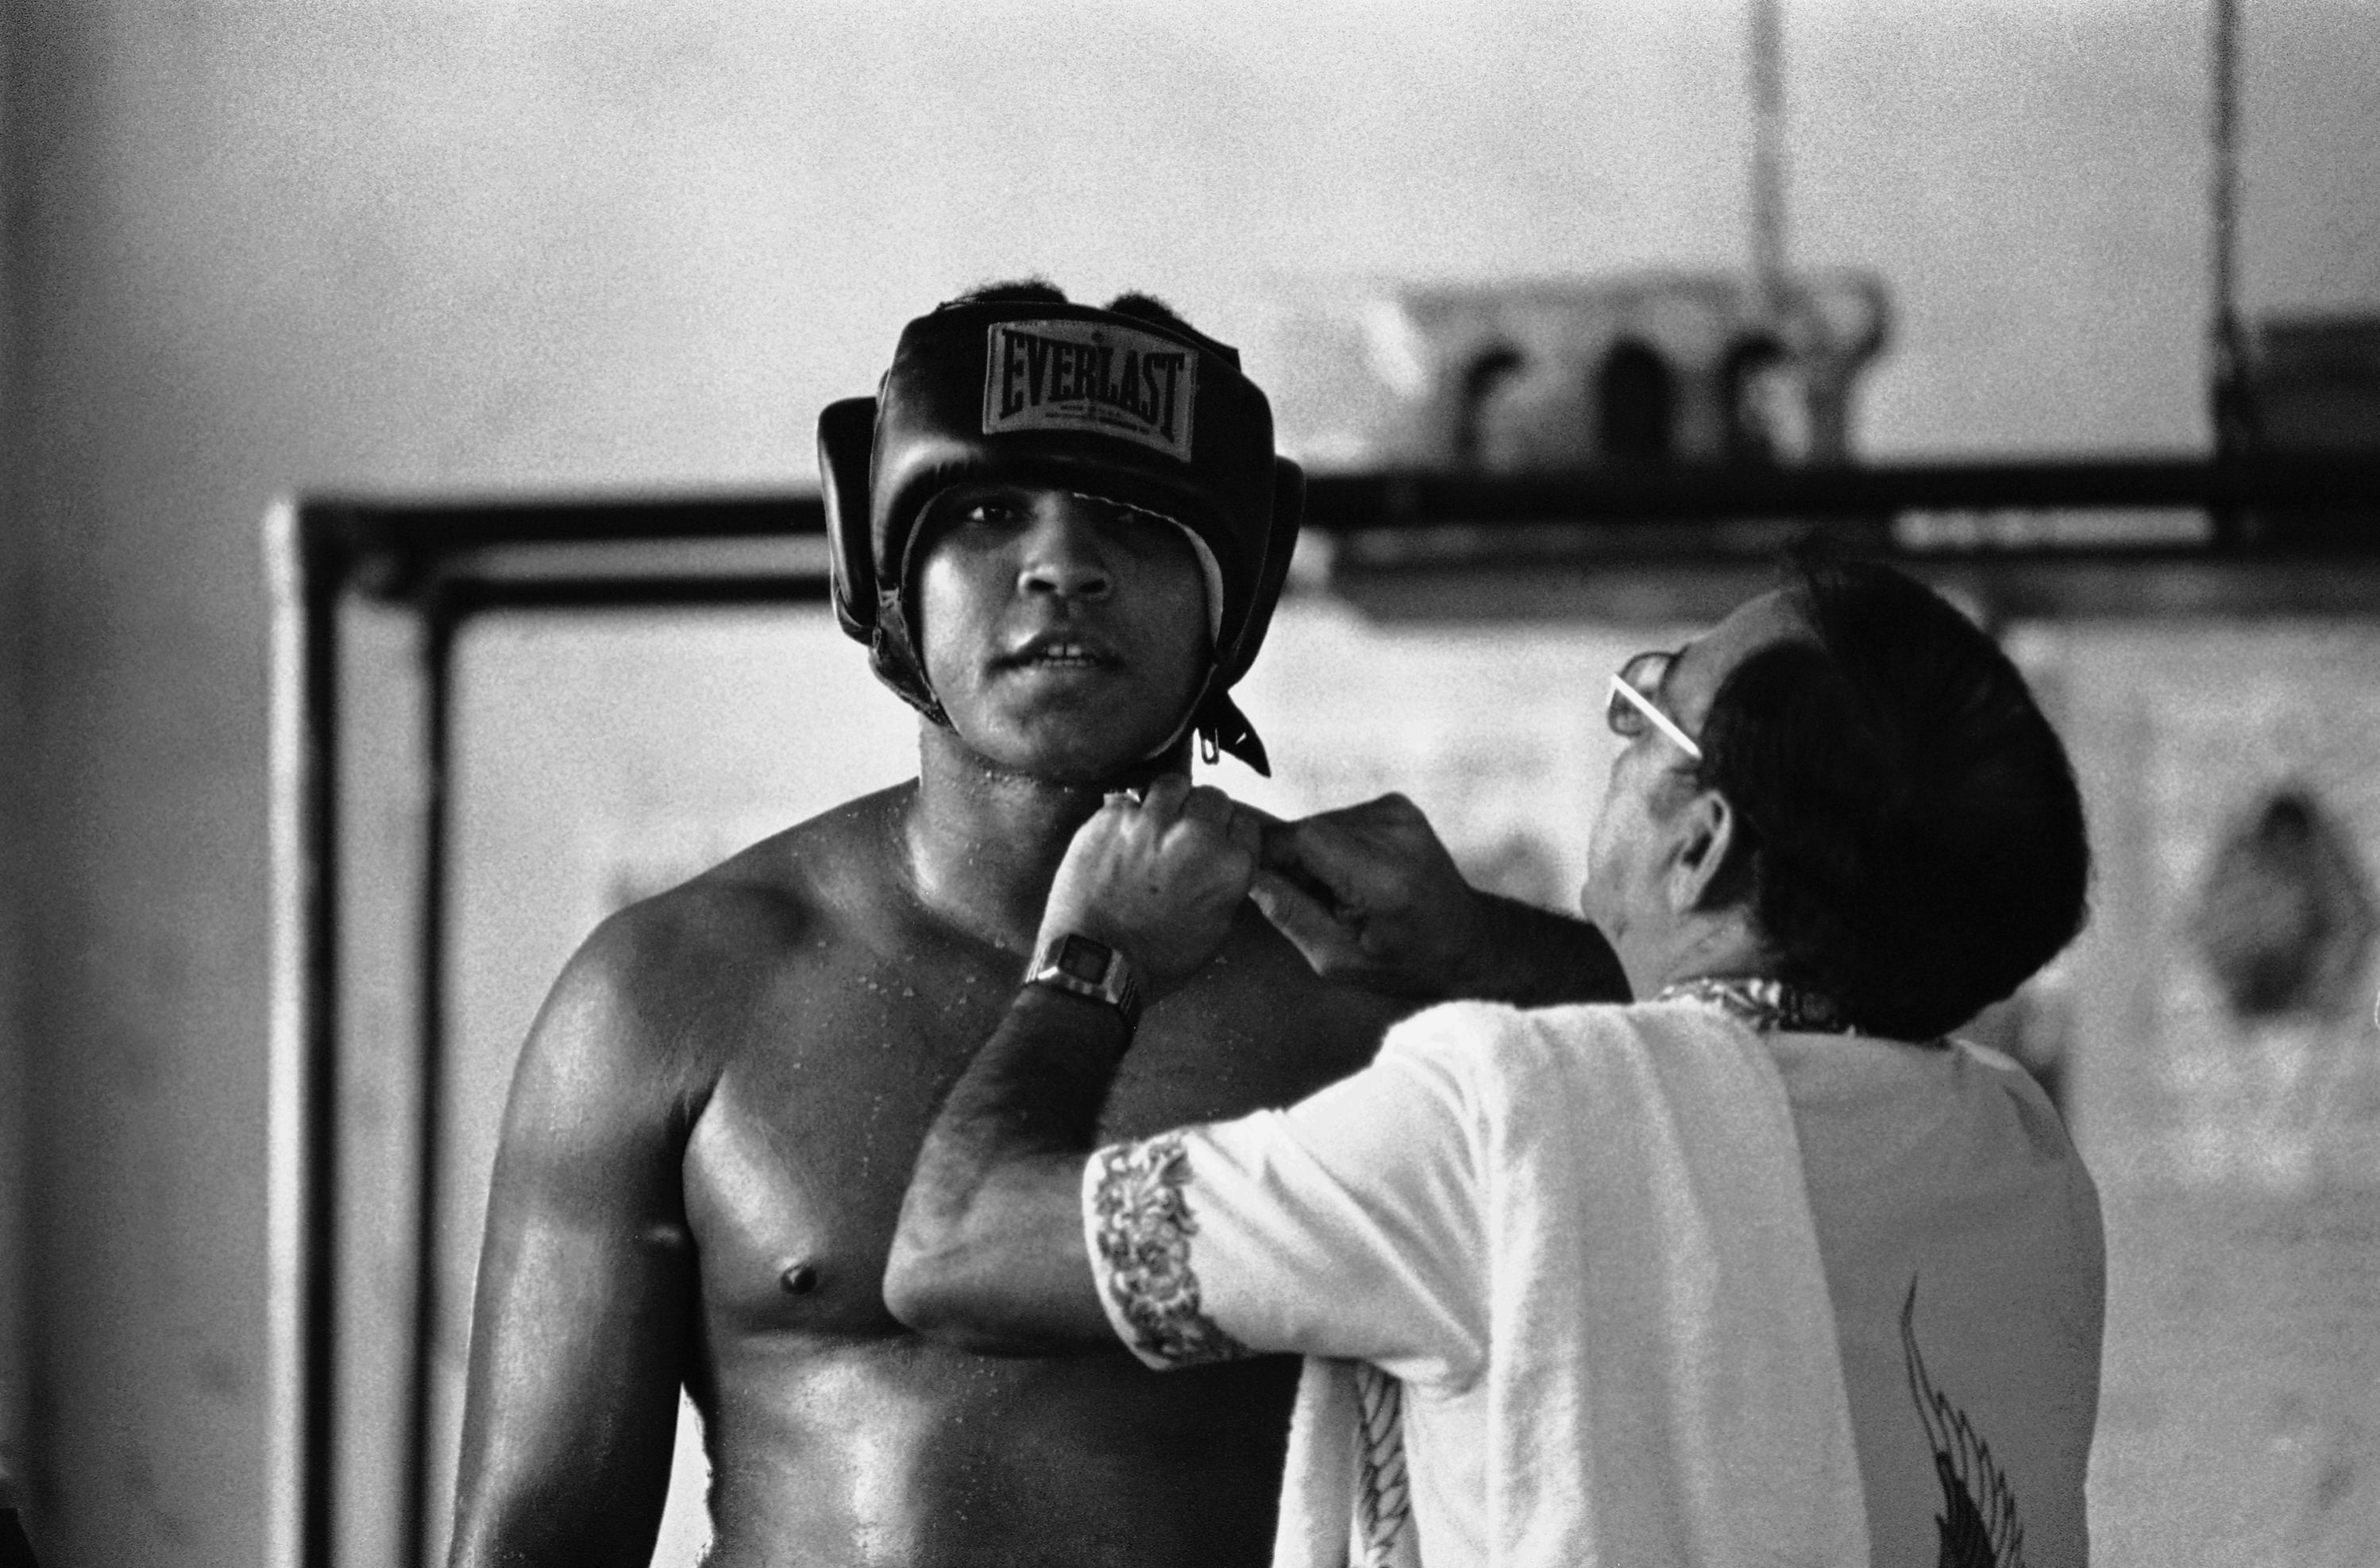 A younger Muhammad Ali being fitted for boxing headgear in a training gym, from the chest up